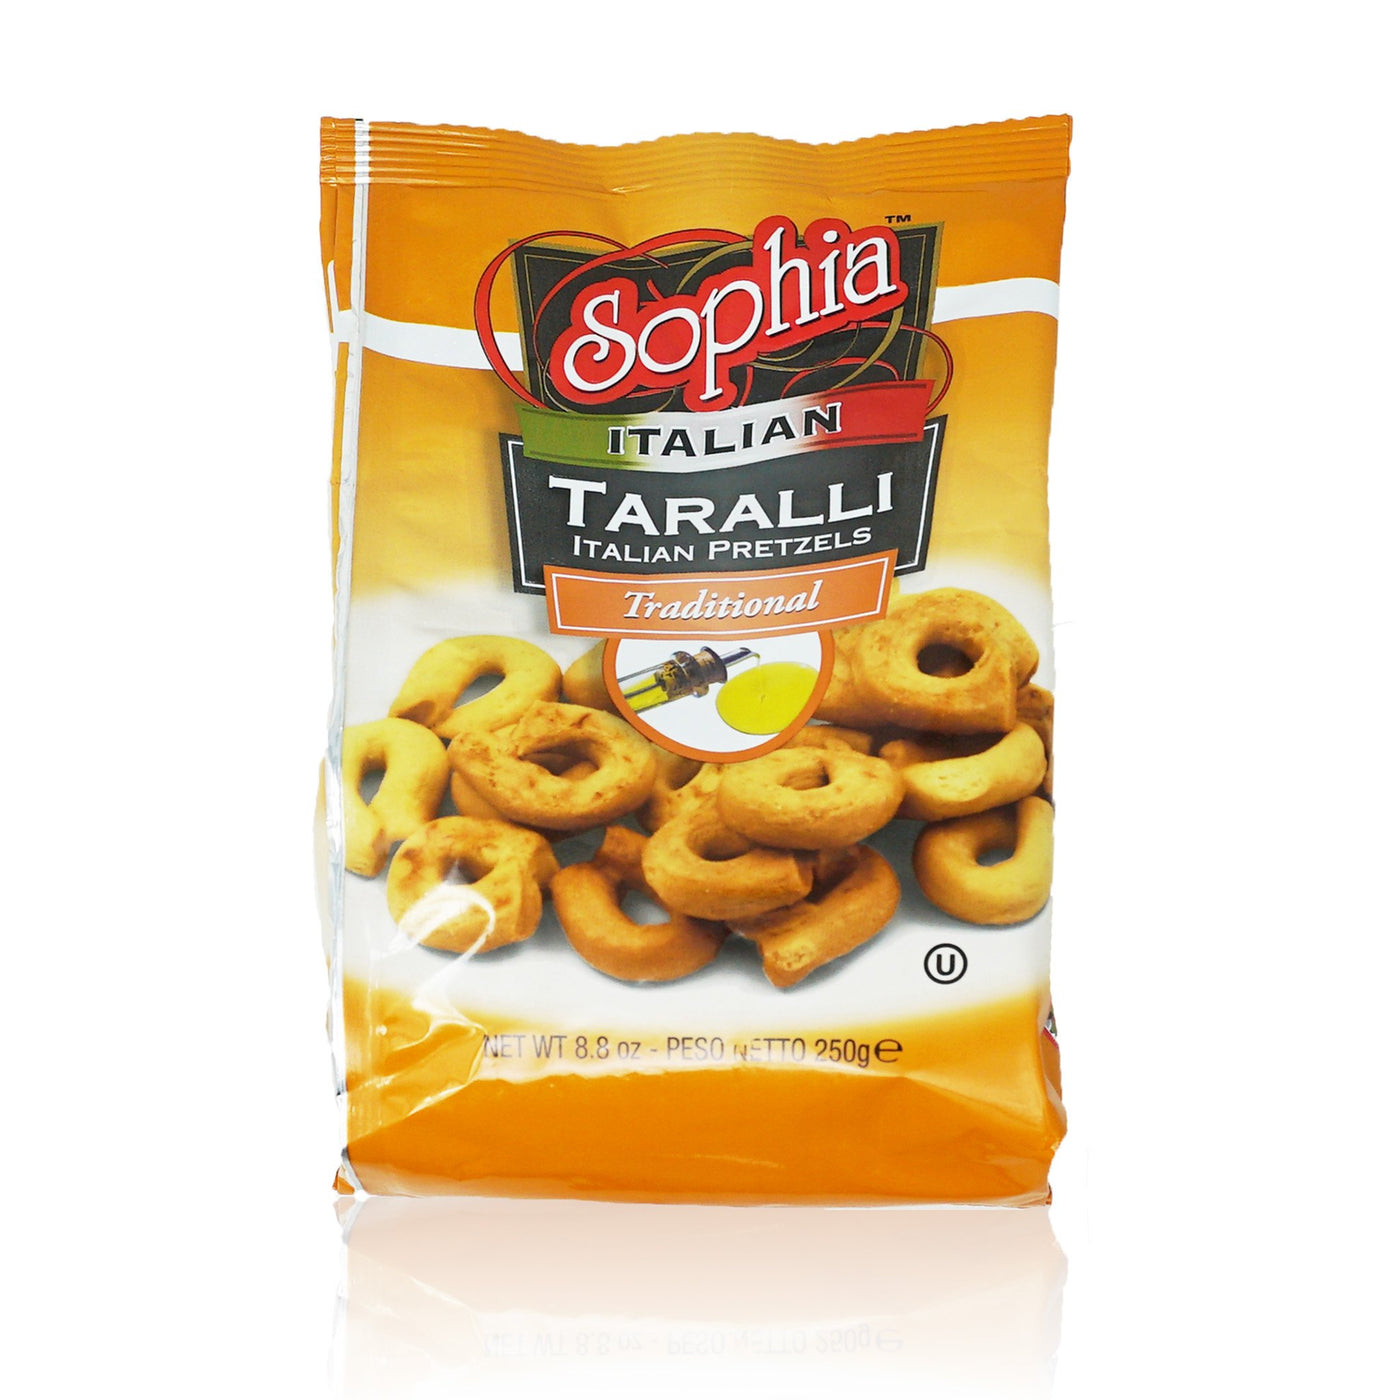 Sophia Taralli Italian Pretzels - Traditional Extra Virgin 8.8oz